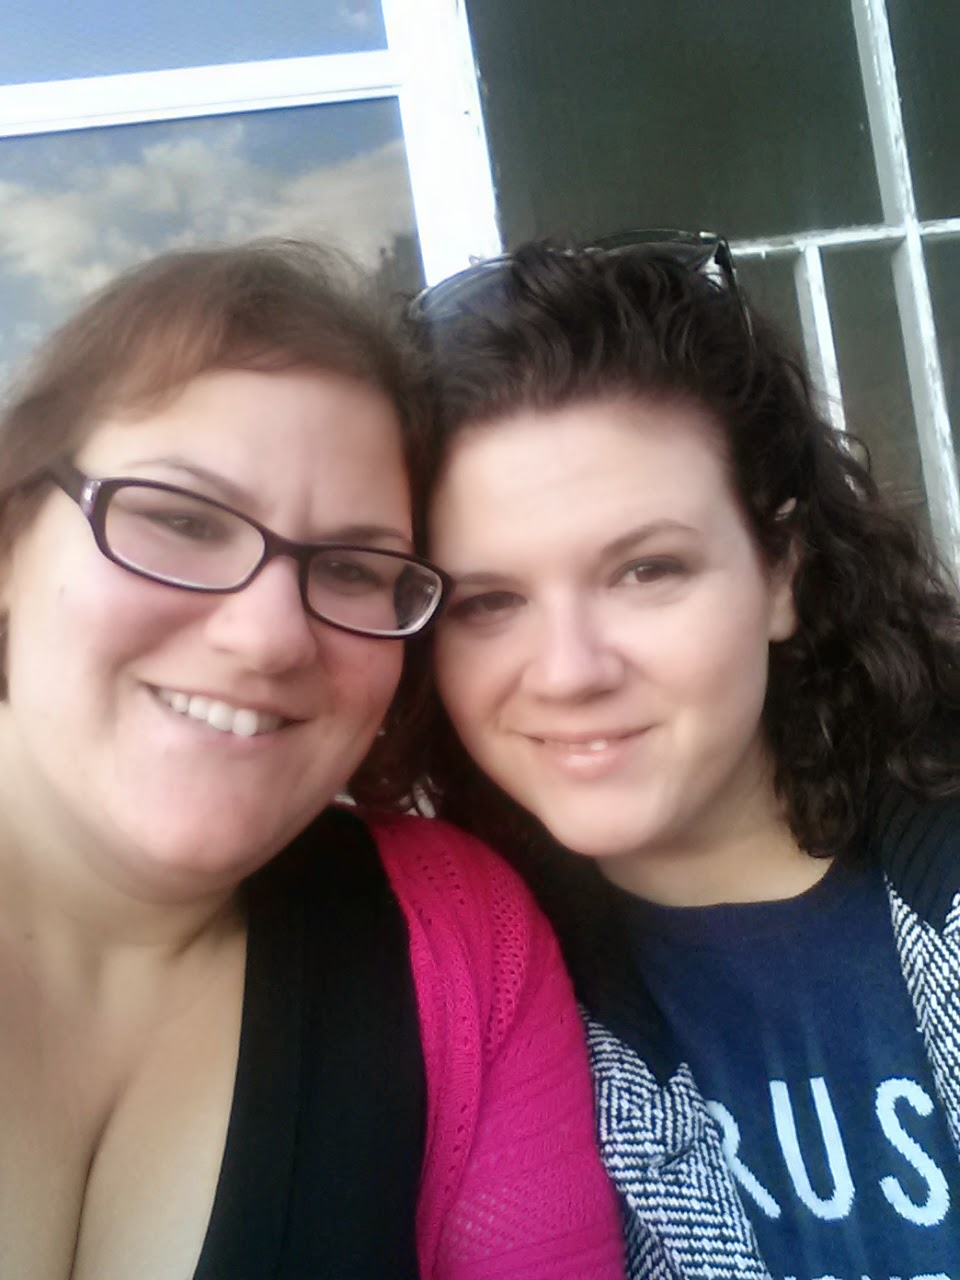 Me and Natalie on Thanksgiving.